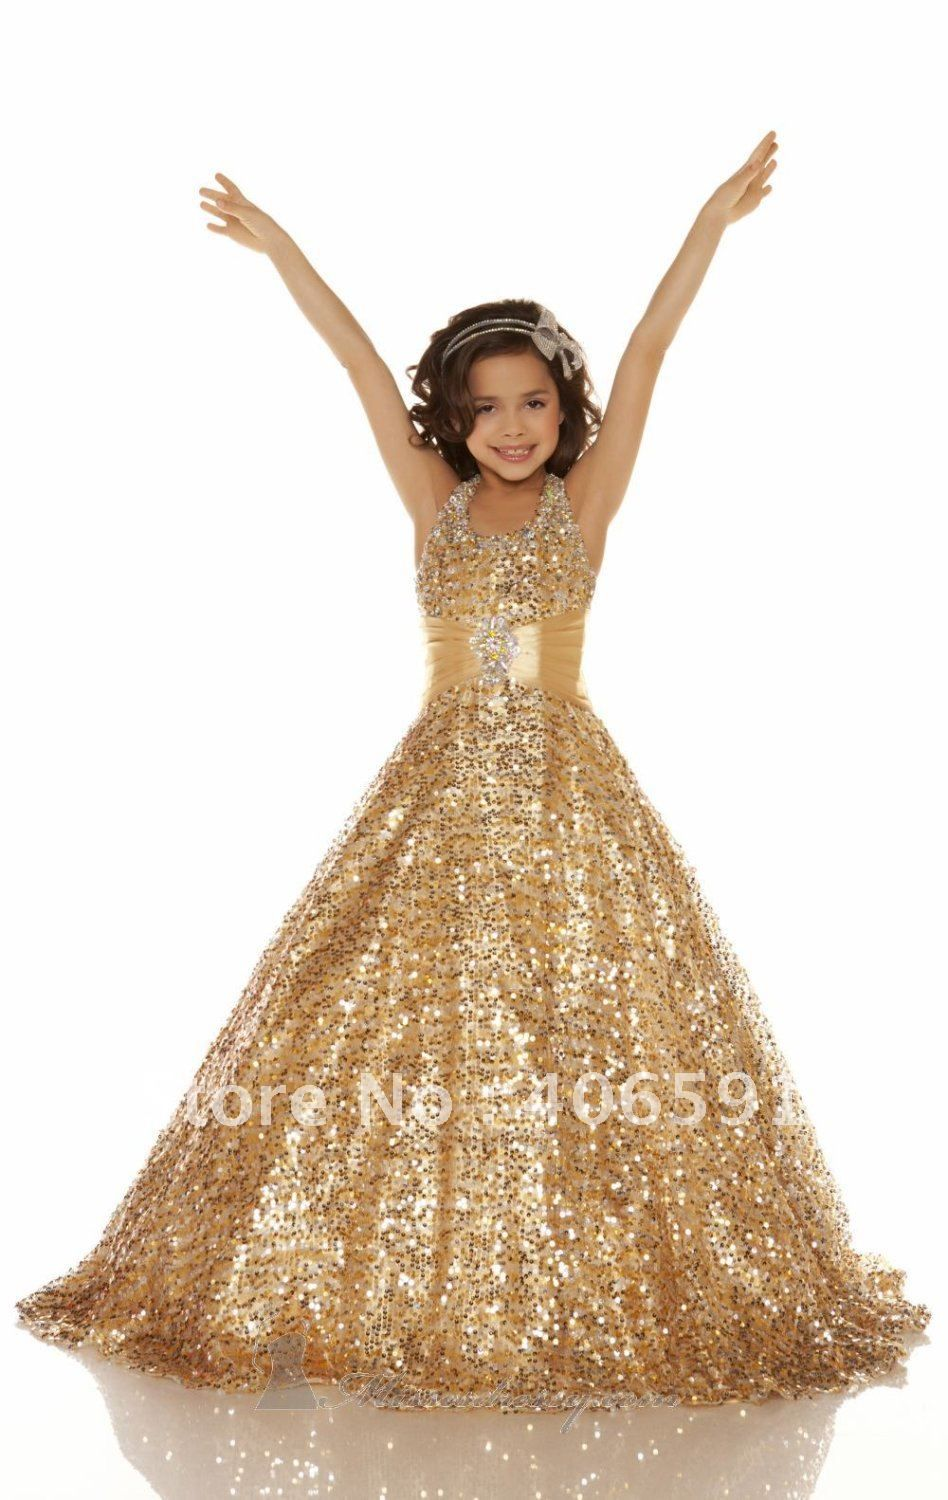 new style gold color girls pageant dresses long lace in